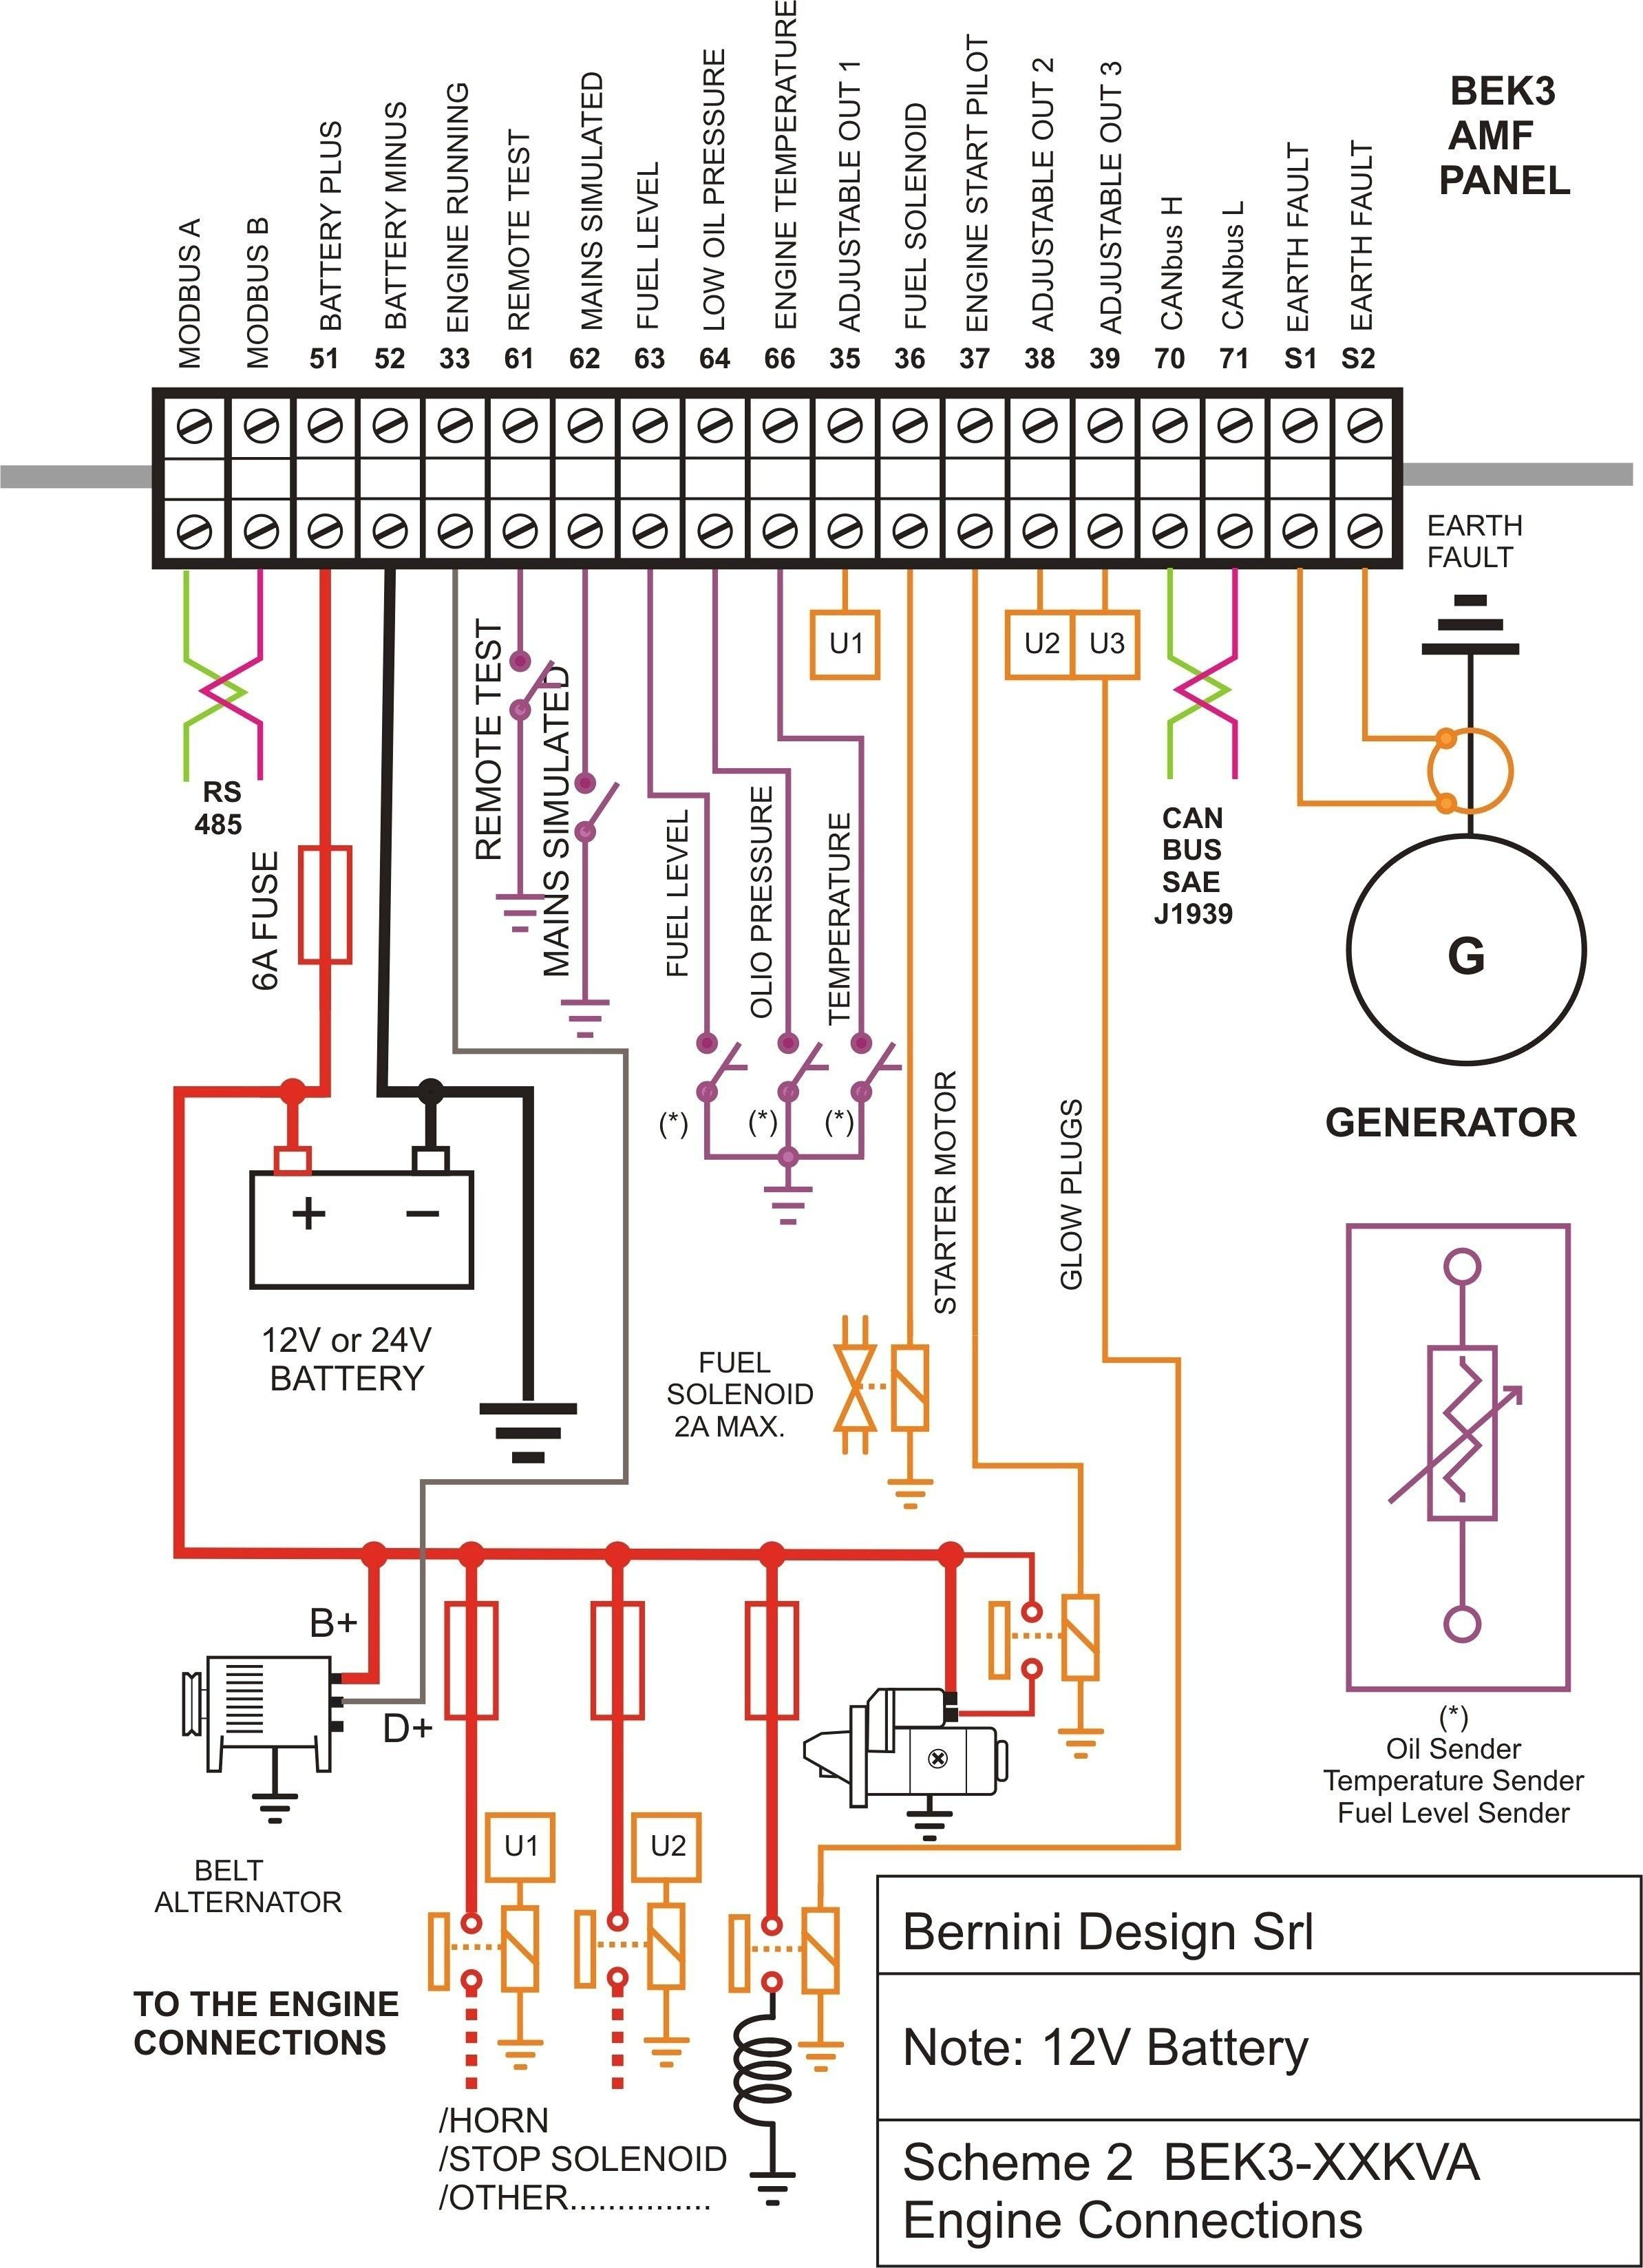 Industrial Electrical Wiring Pdf Unique Perfect Industrial Electrical Wiring Diagrams Elec Electrical Circuit Diagram Electrical Wiring Diagram Circuit Diagram